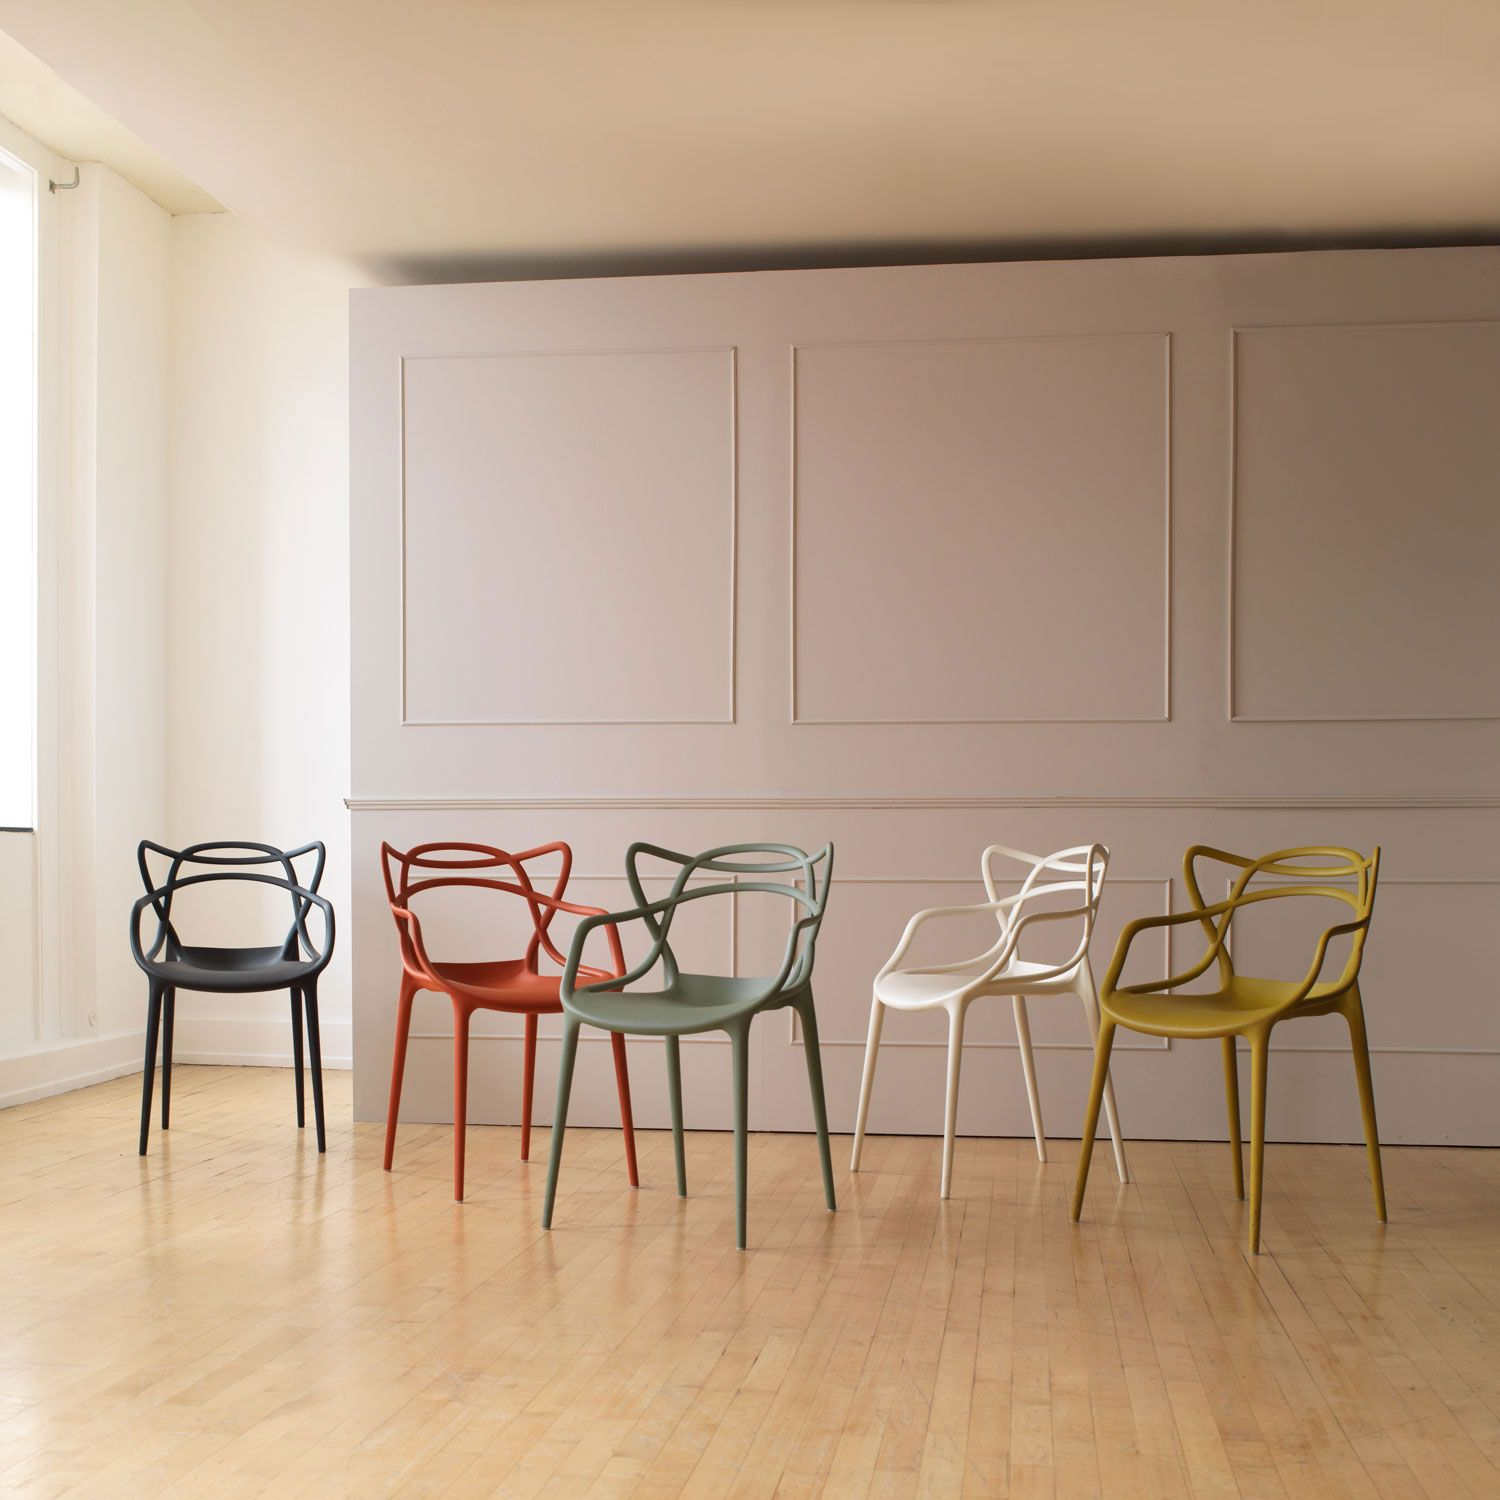 Kartell masters chair by philippe starck chairs chairs for Copie design mobili